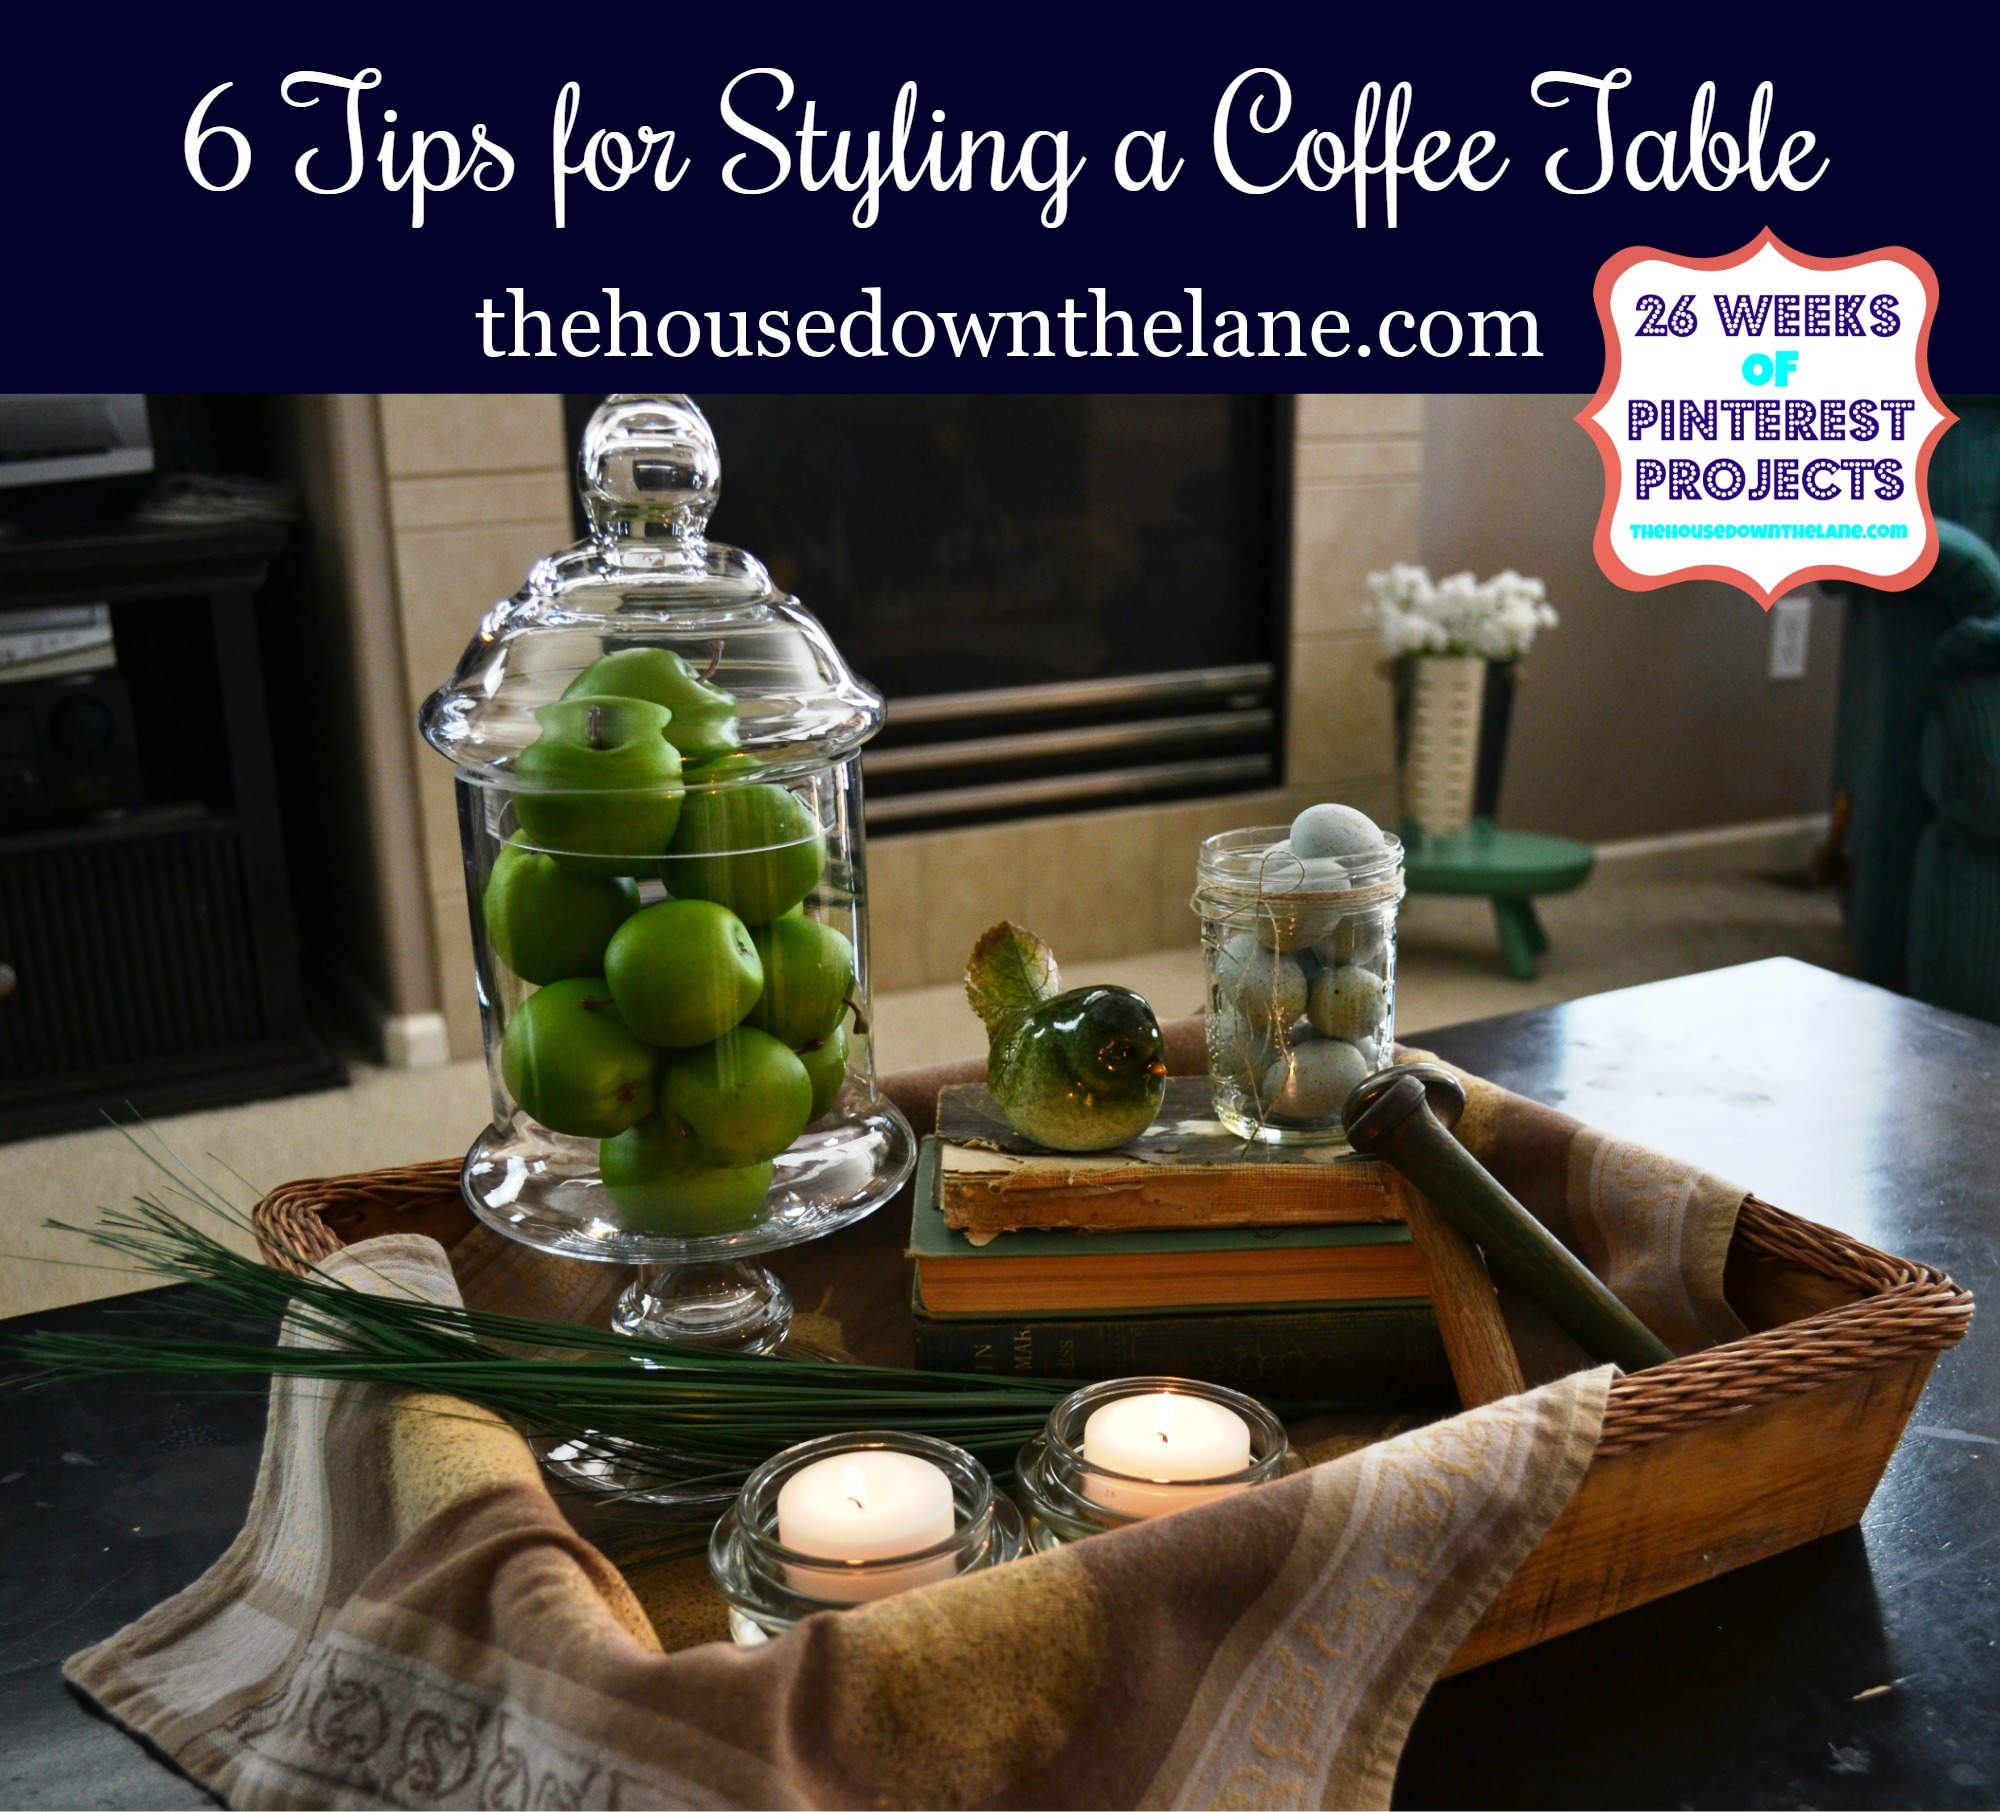 6 Tips for Styling a Coffee Table via thehousedownthelane.com.